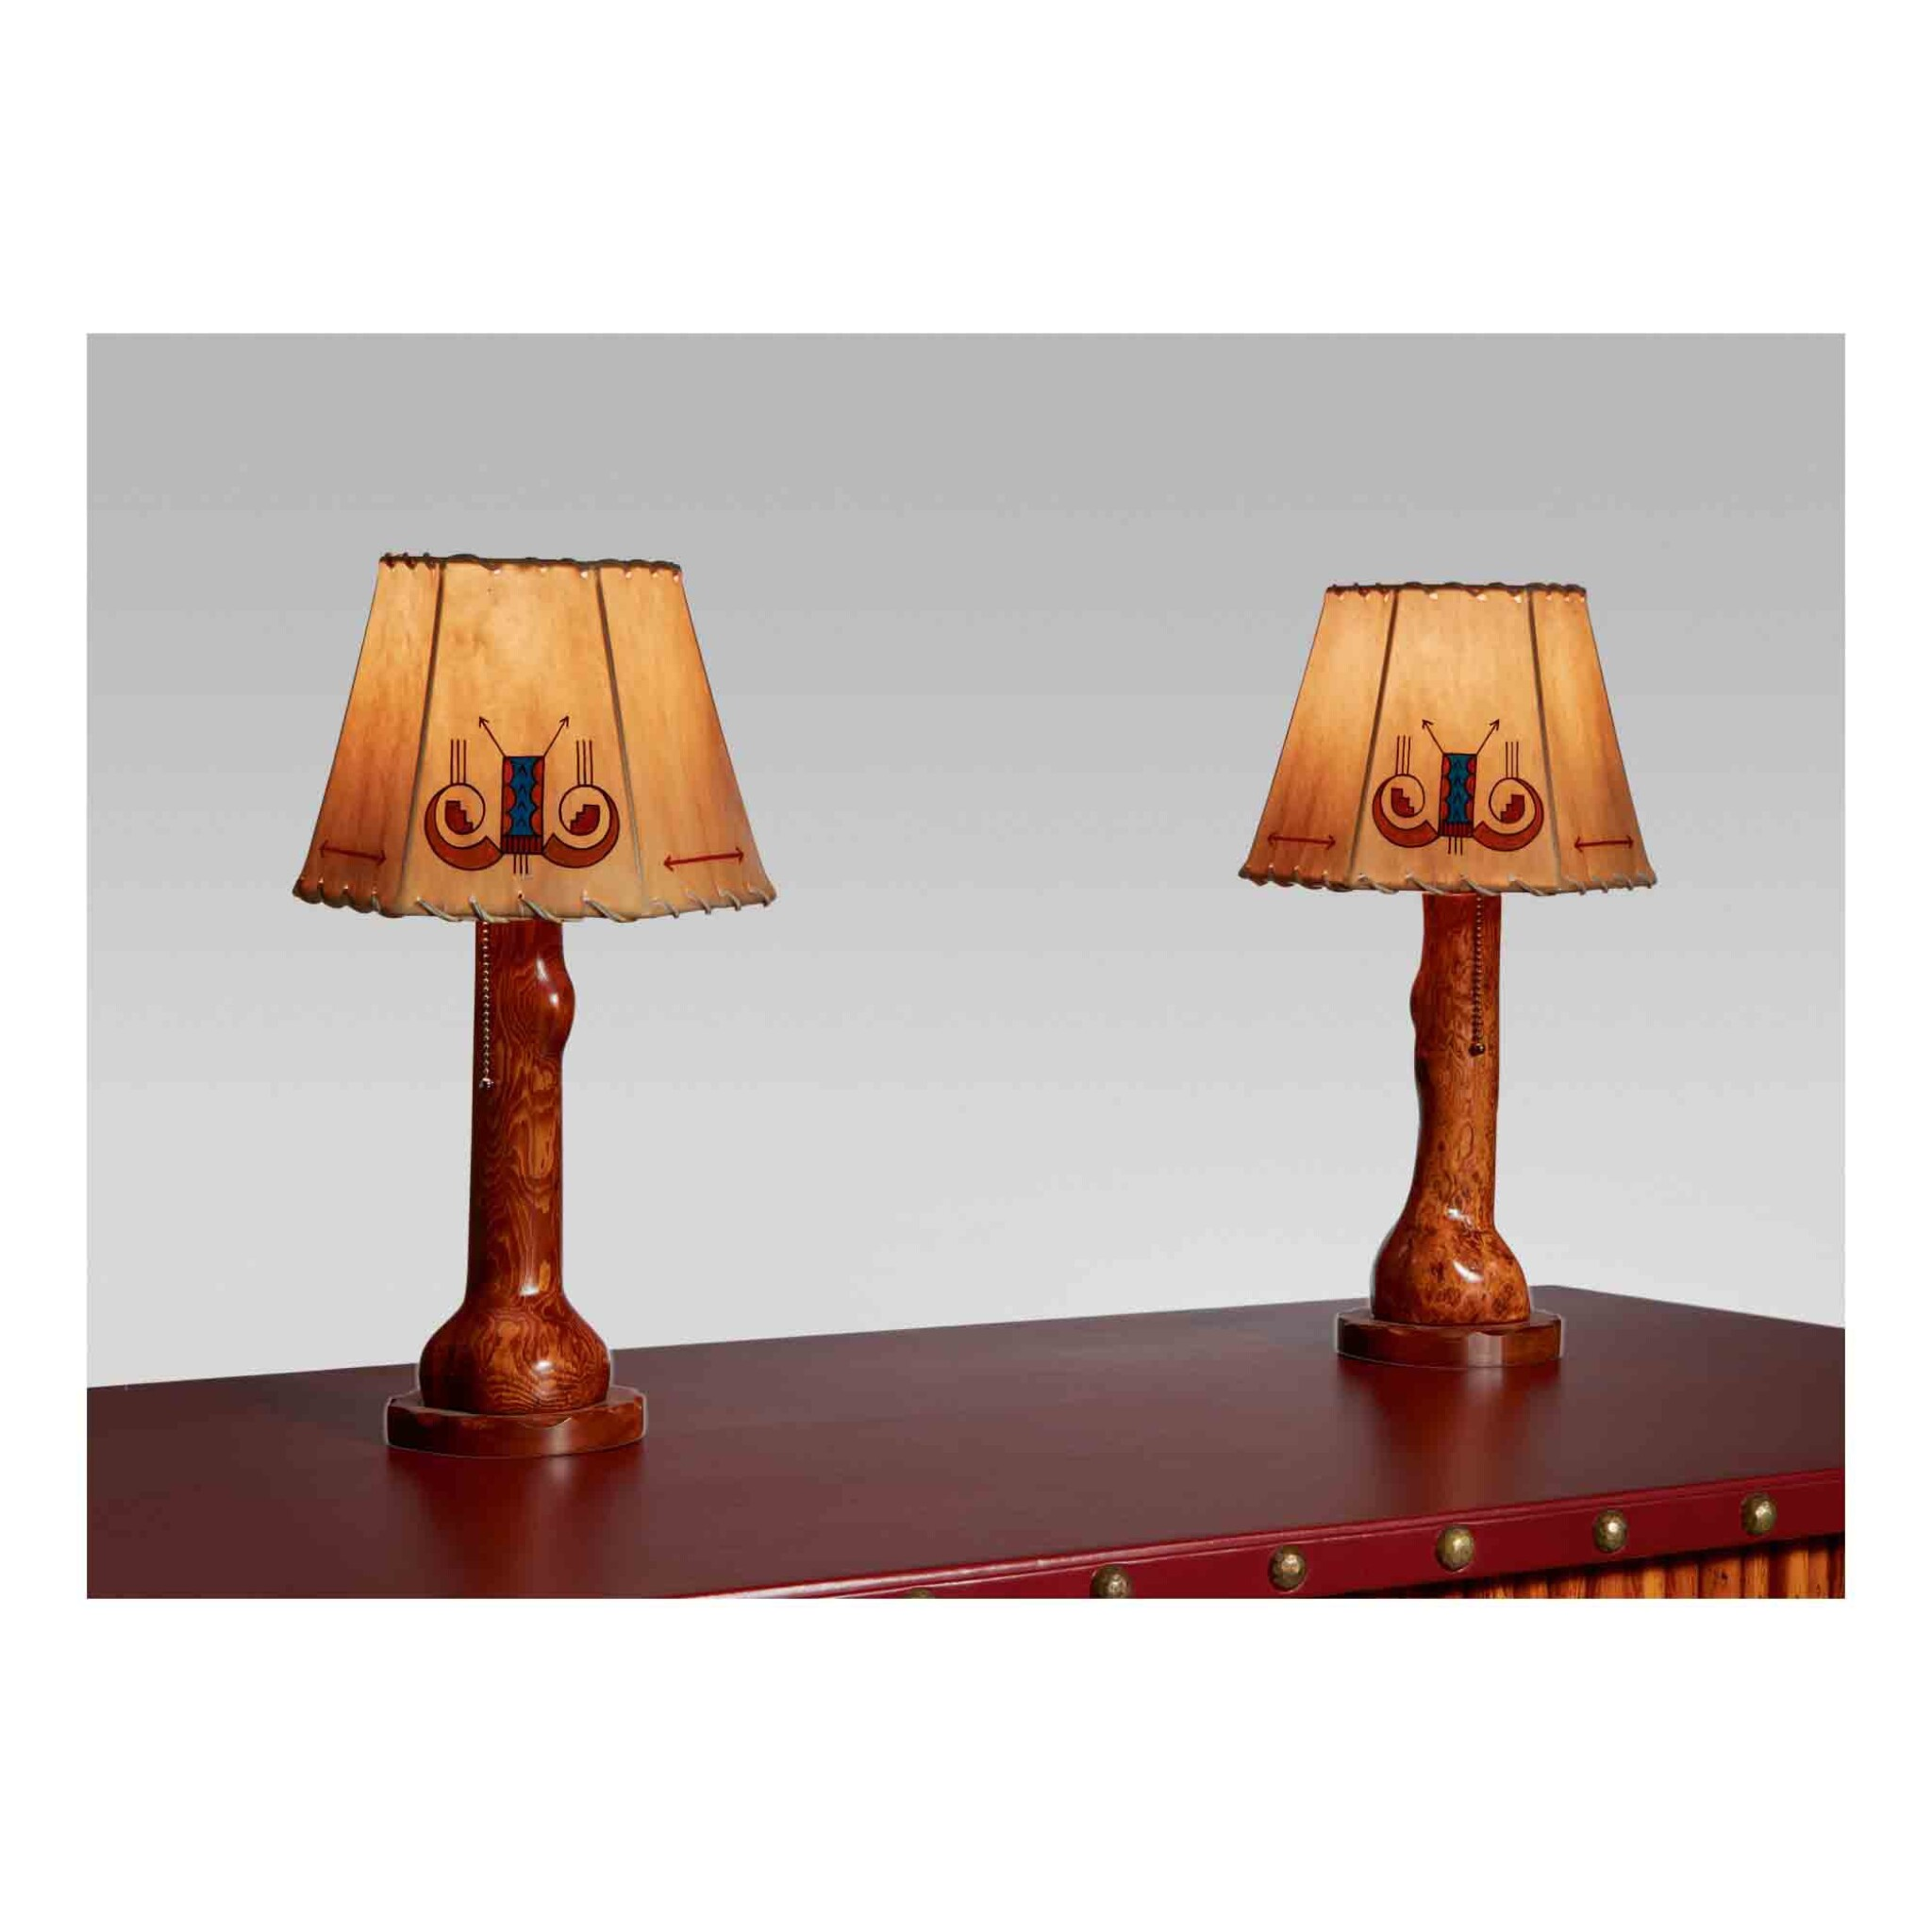 View 1 of Lot 306. Pair of Table Lamps.